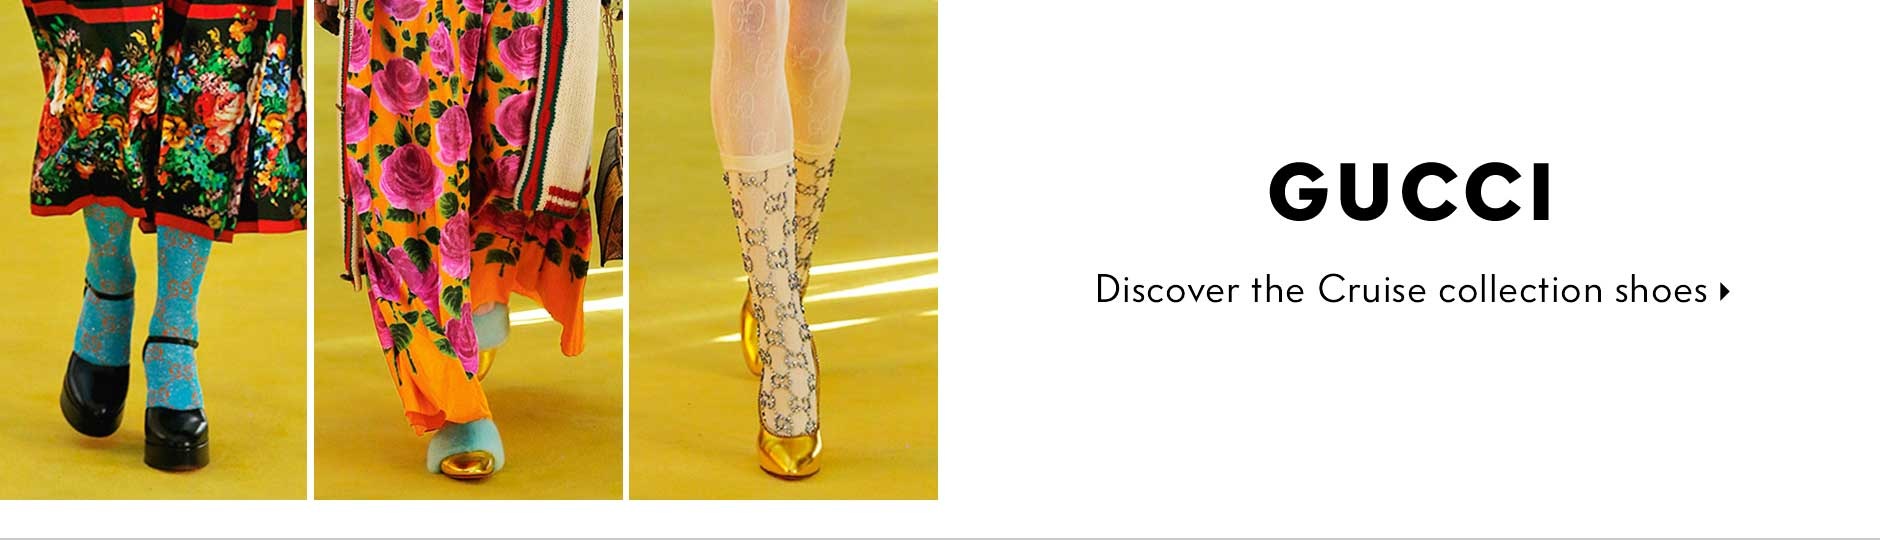 Gucci - Discover the Cruise collection shoes